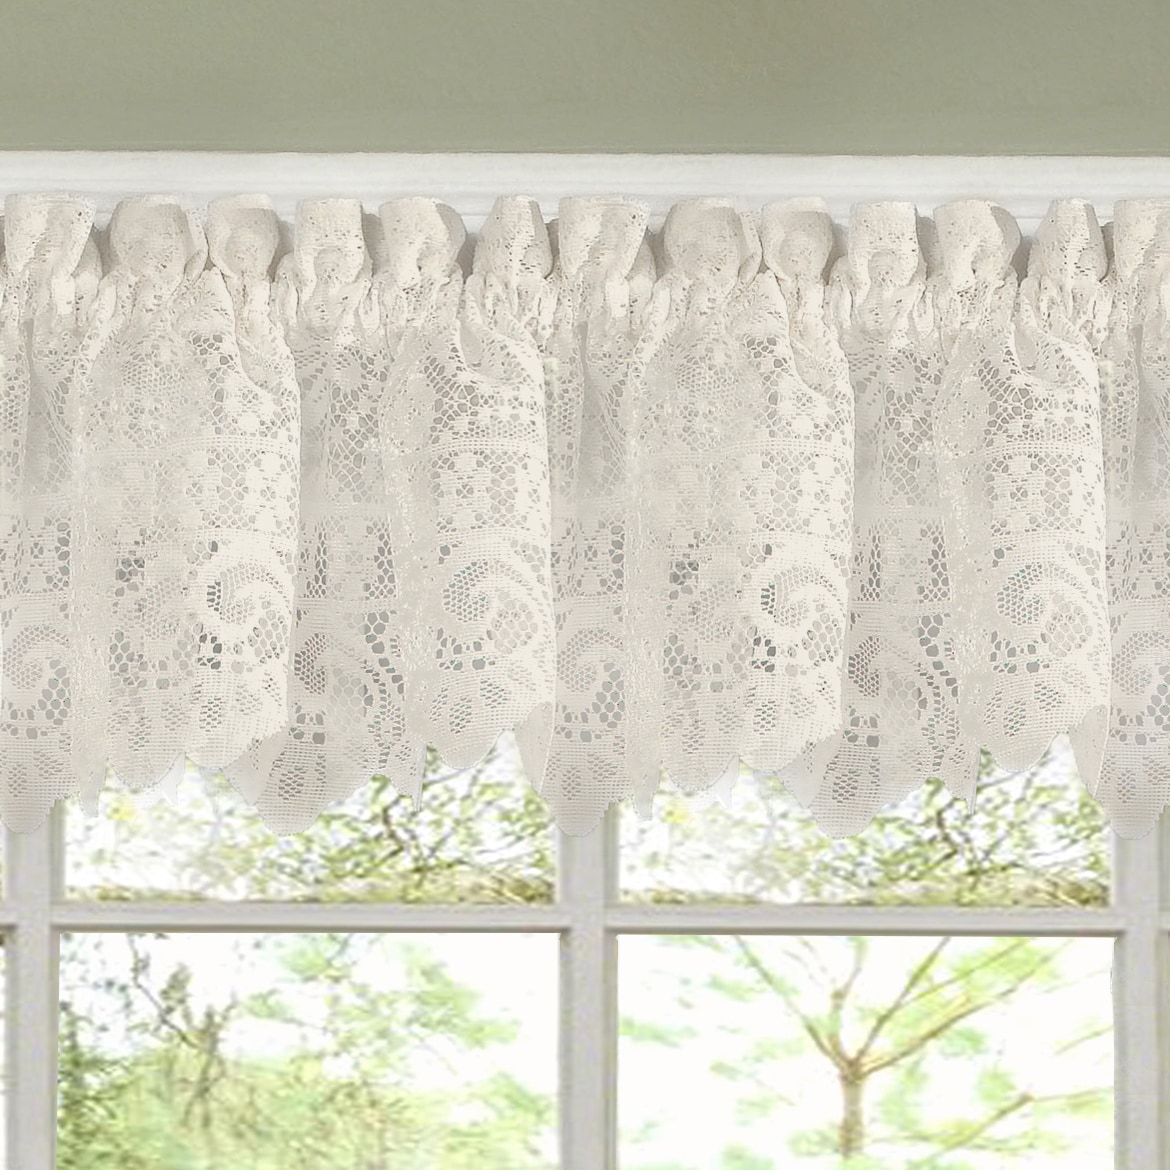 Shop Luxurious Old World Style Lace Kitchen Curtains Tiers And